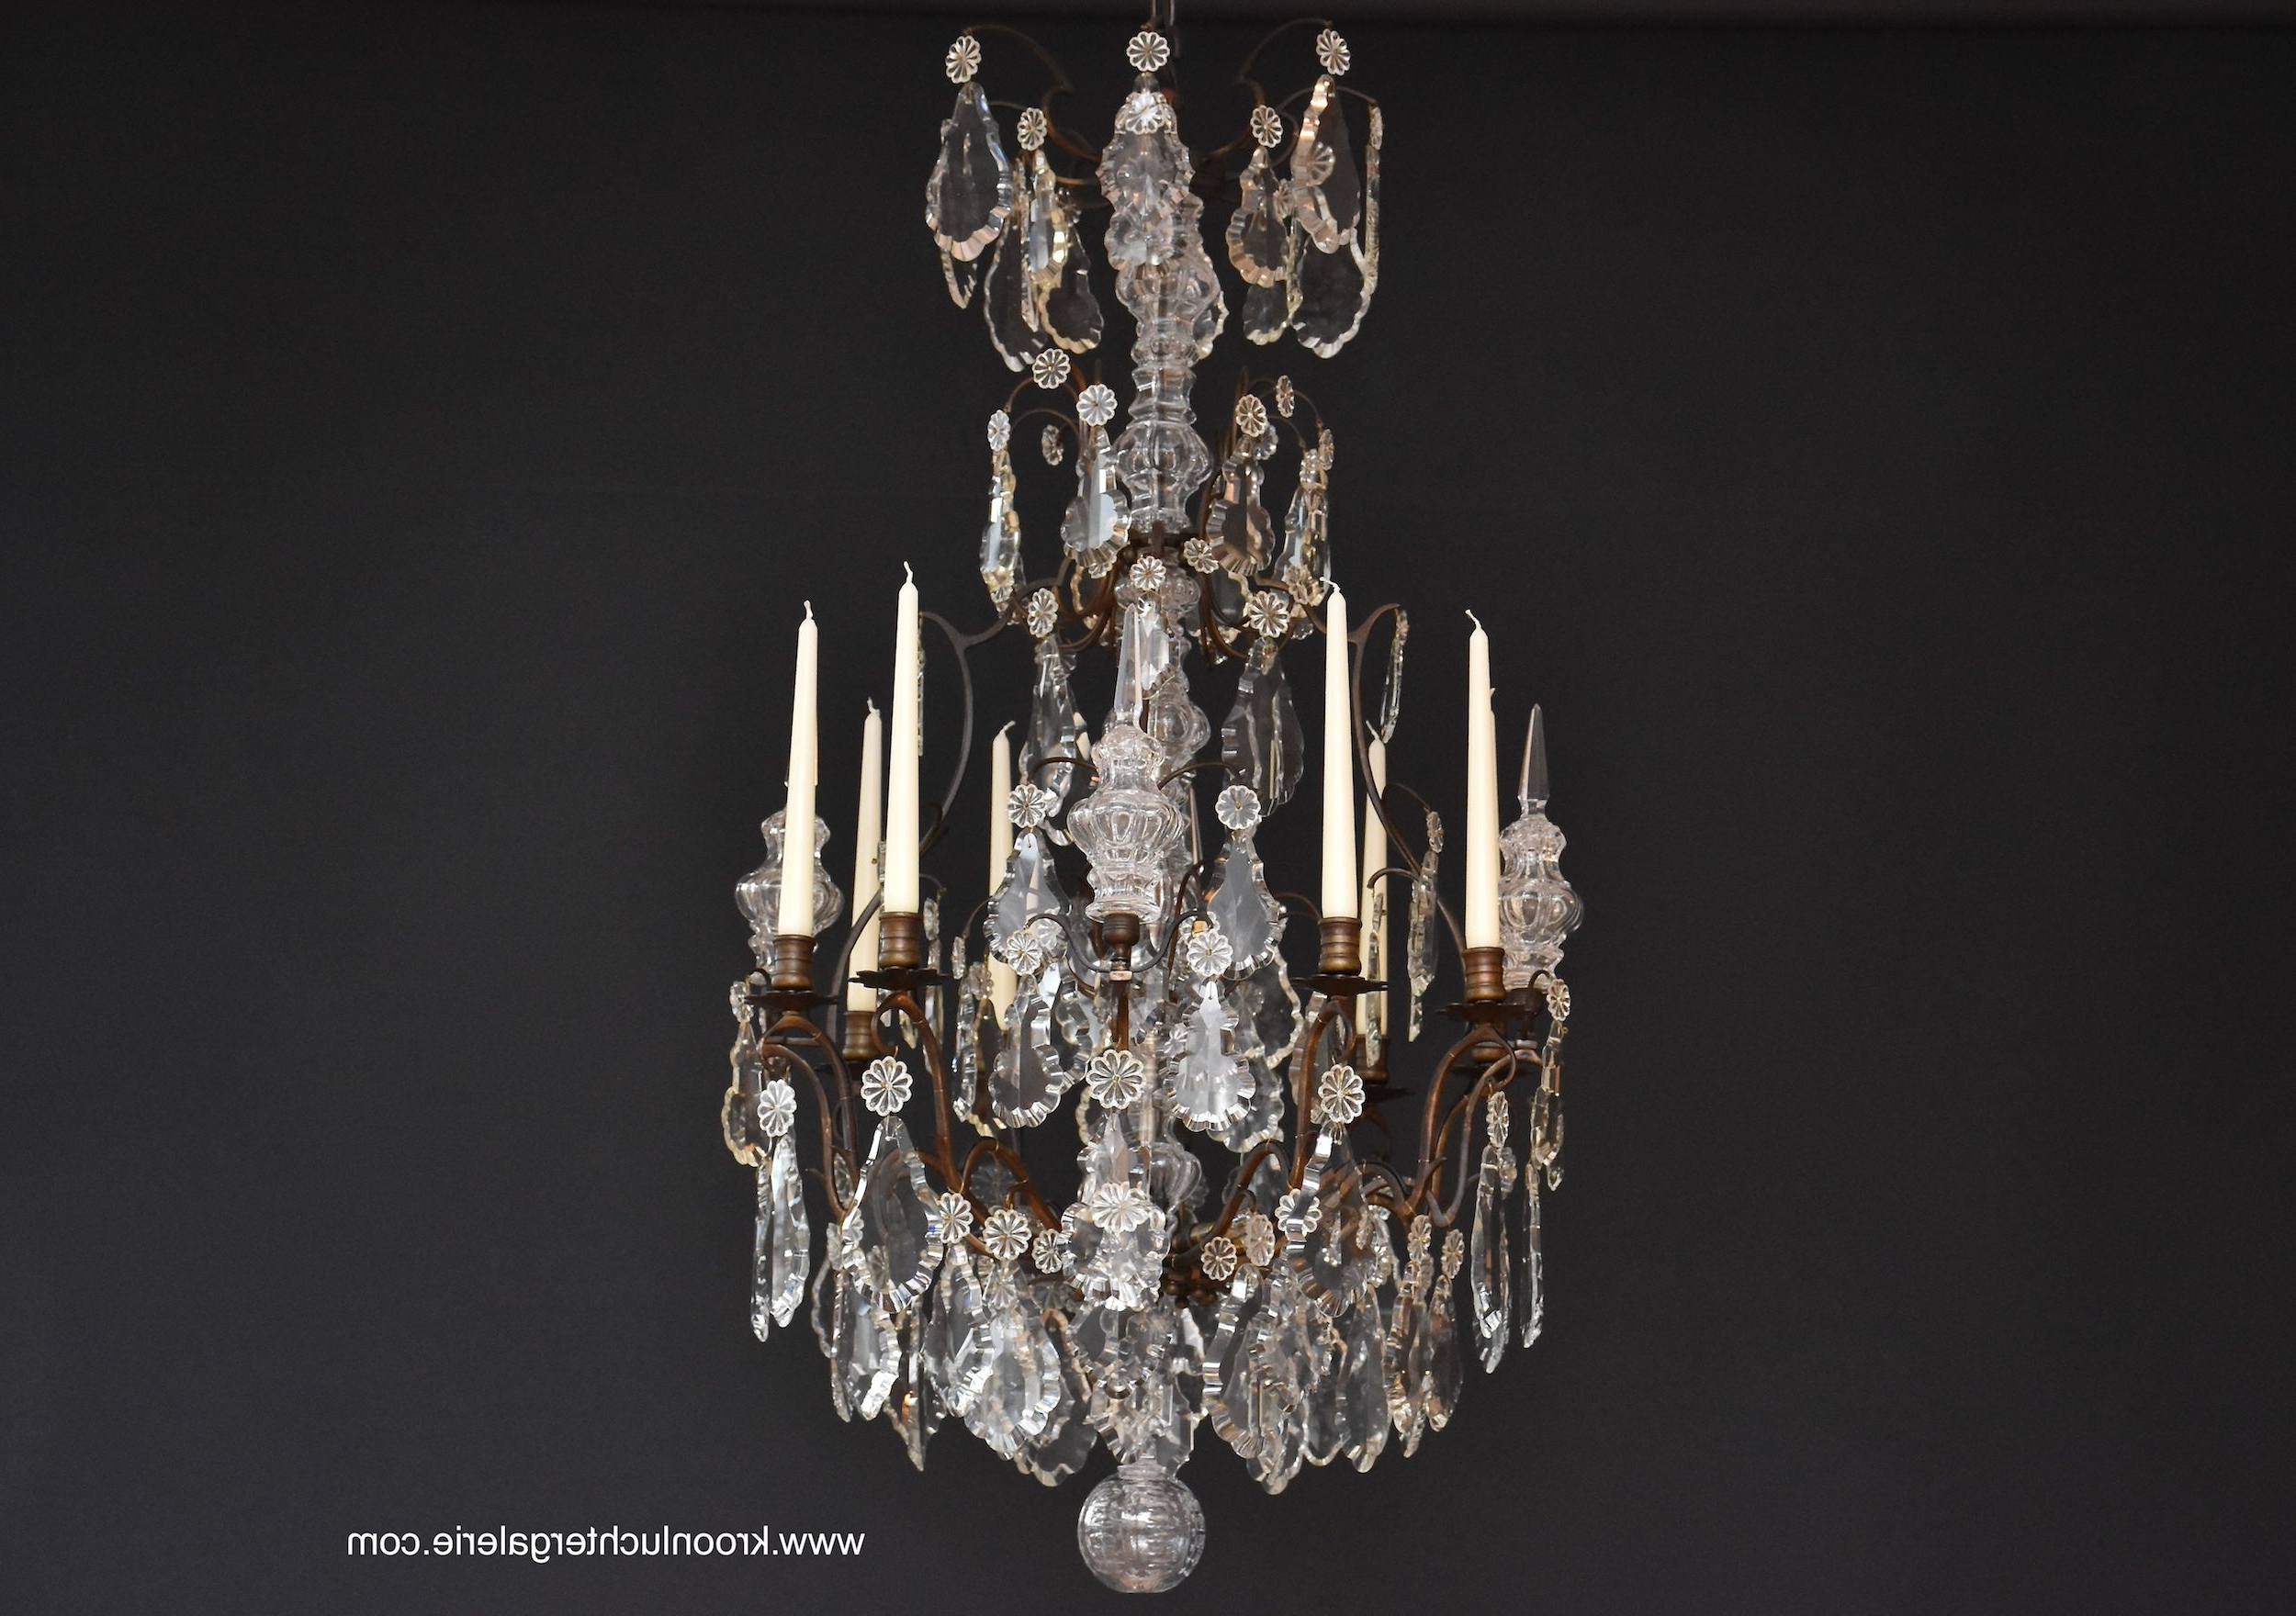 French Chandelier With Regard To Widely Used French Chandelier In Style Of Louis Xv, Ref (View 18 of 20)